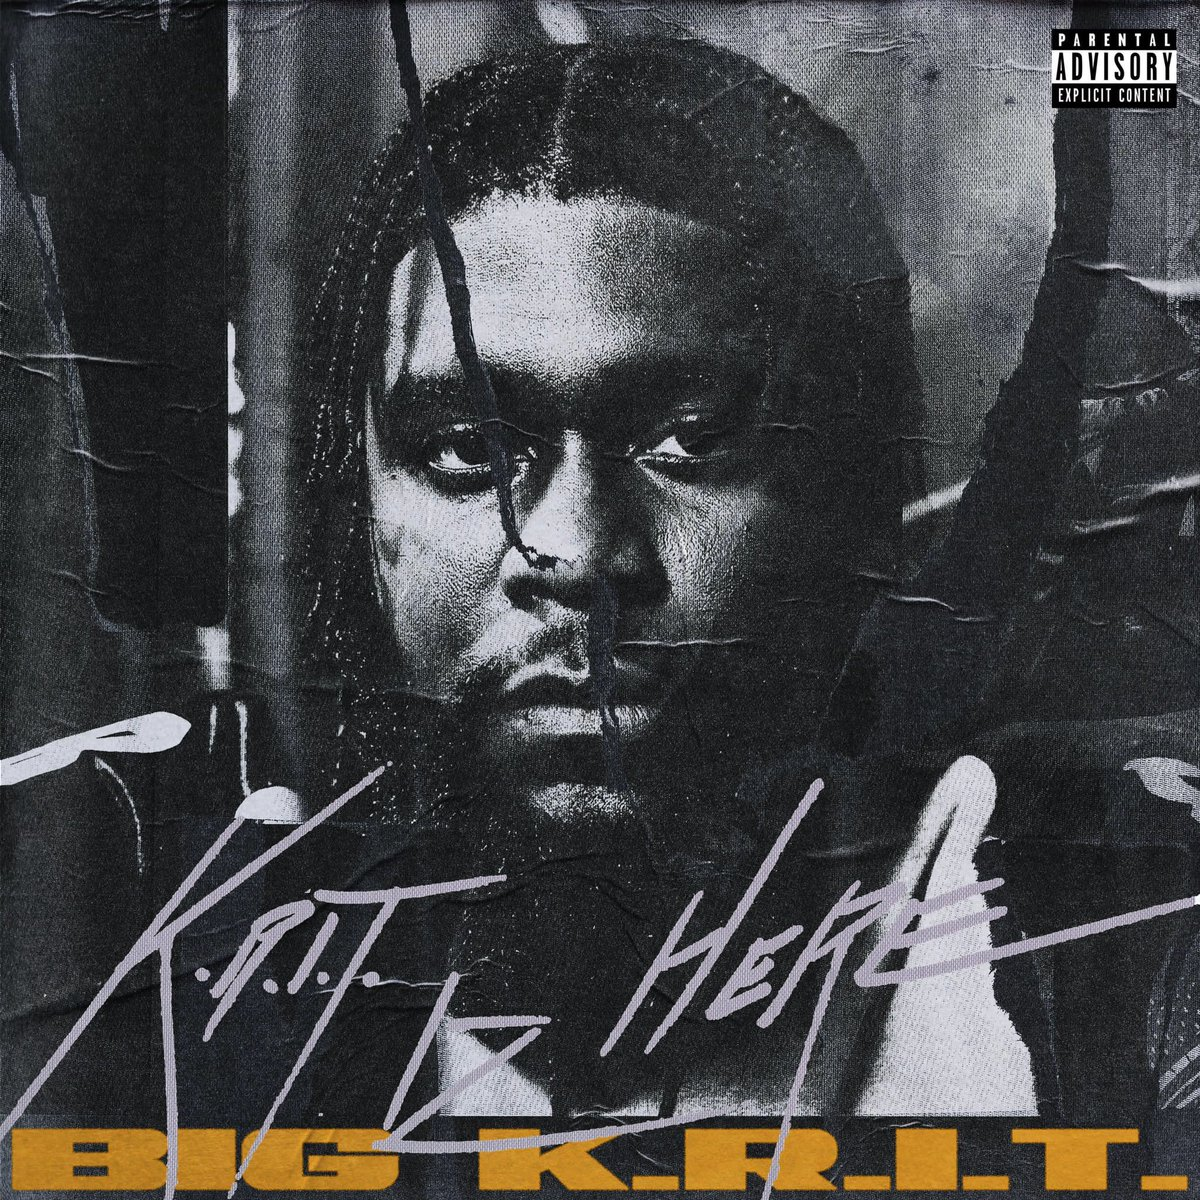 """Big K.R.I.T is releasing his new album """"K.R.I.T IZ HERE"""" on July 12th. 🔥 The album will feature: J Cole Lil Wayne Saweetie Rico Love Yella Beezy Baby Rose Camper Wolfe de Mchls"""